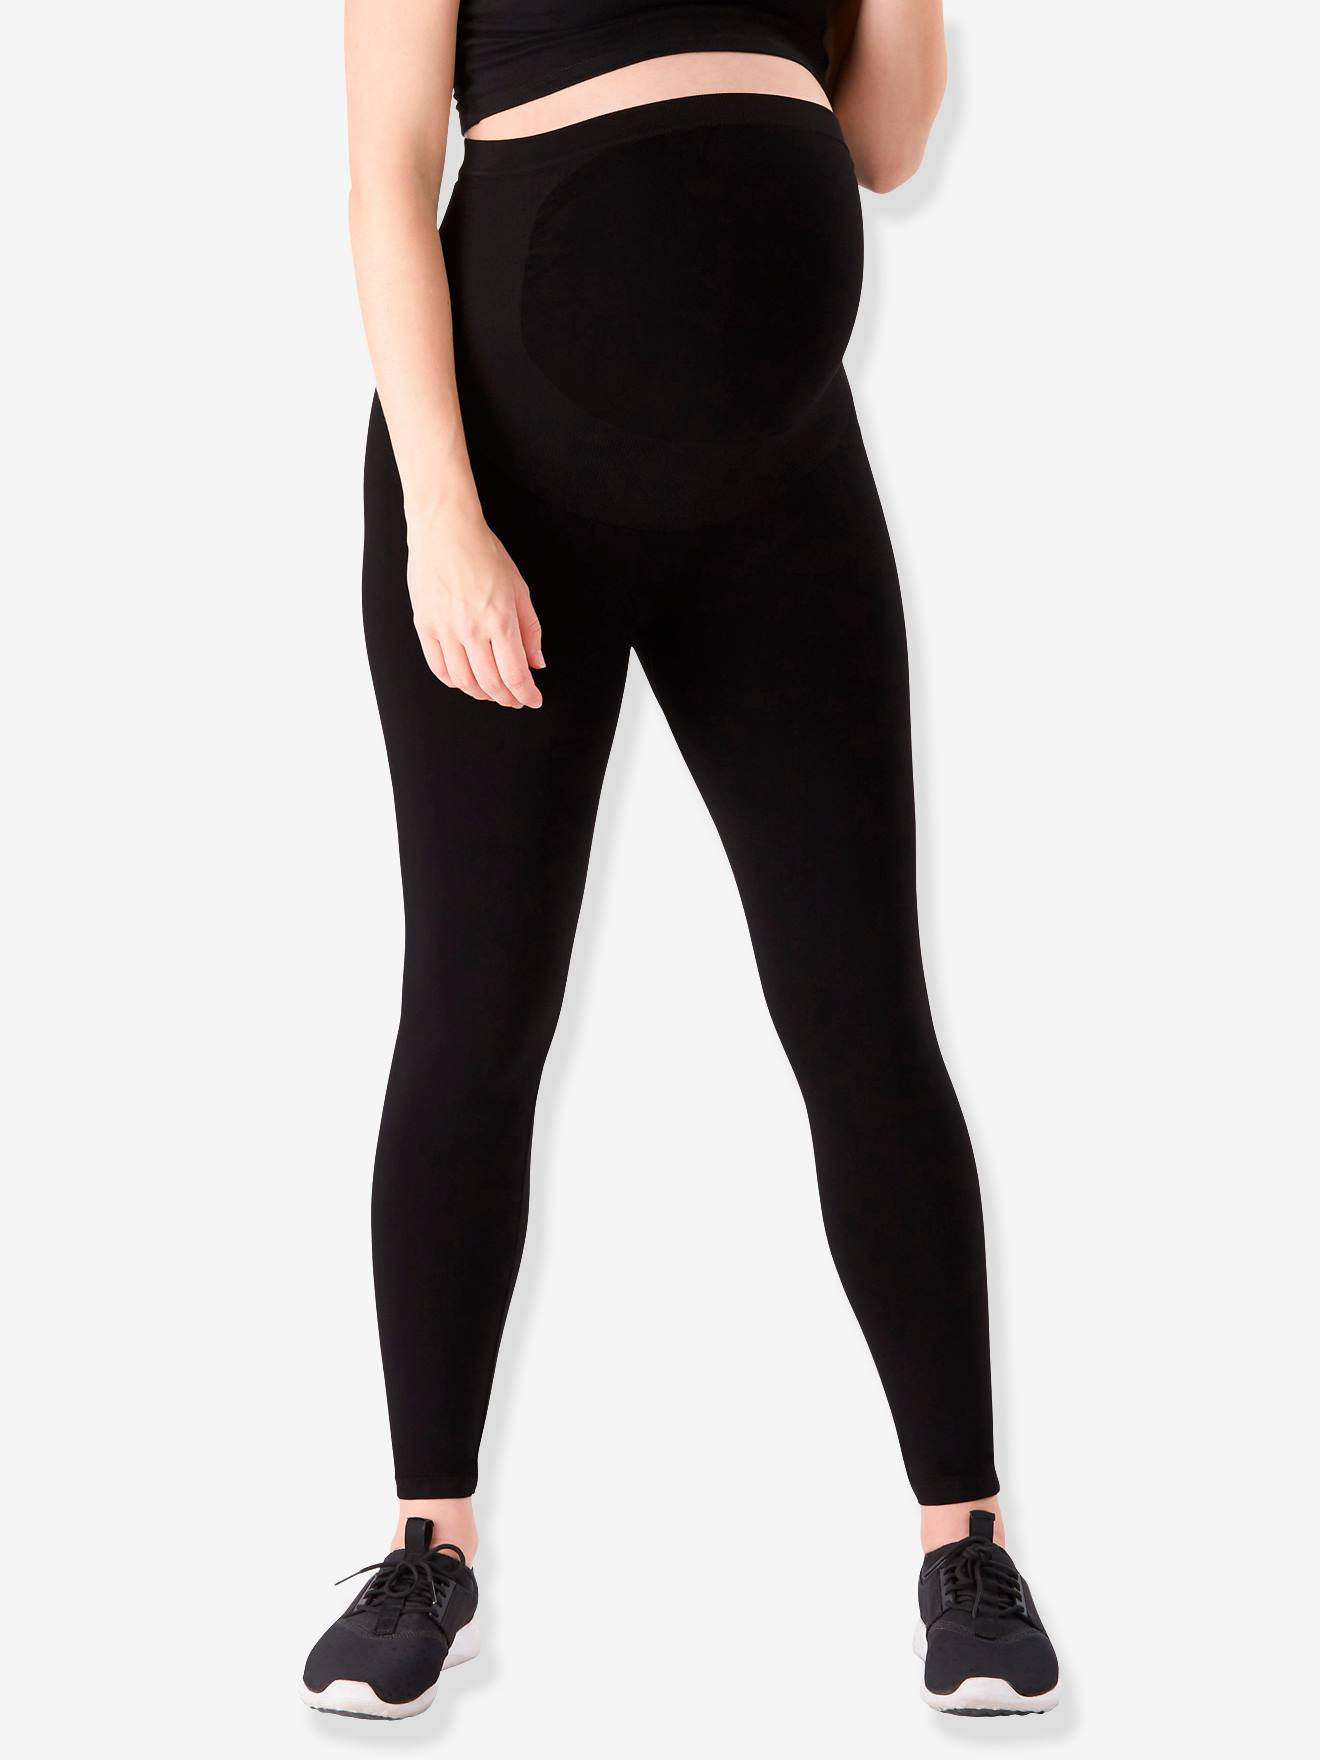 Legging de grossesse Bump Support Legging BELLY BANDIT noir